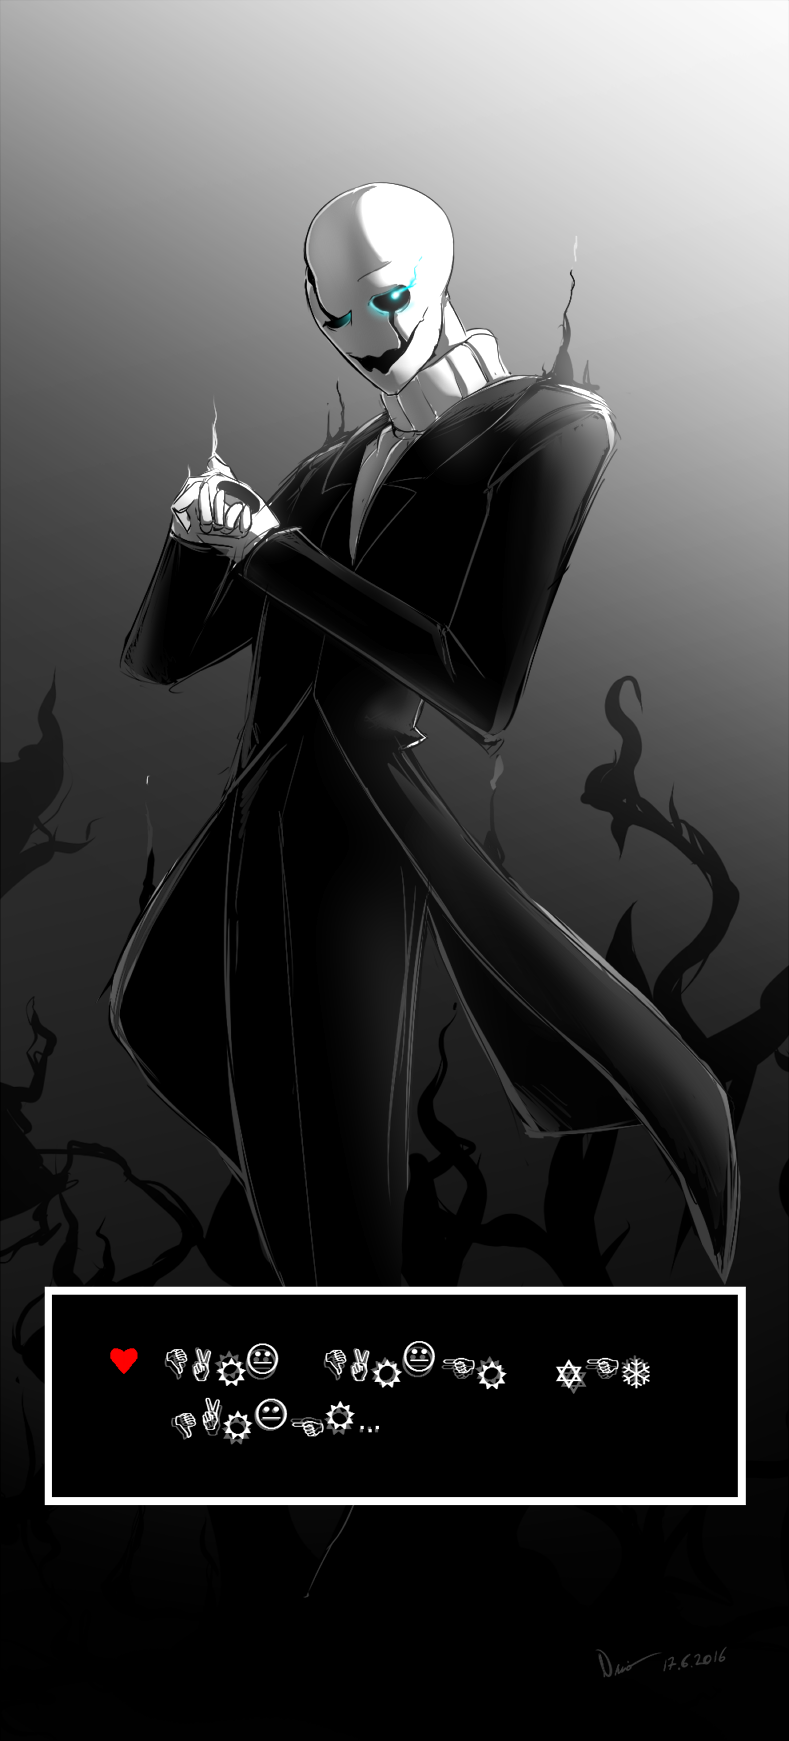 Undertale Wd Gaster By Nsio On Deviantart